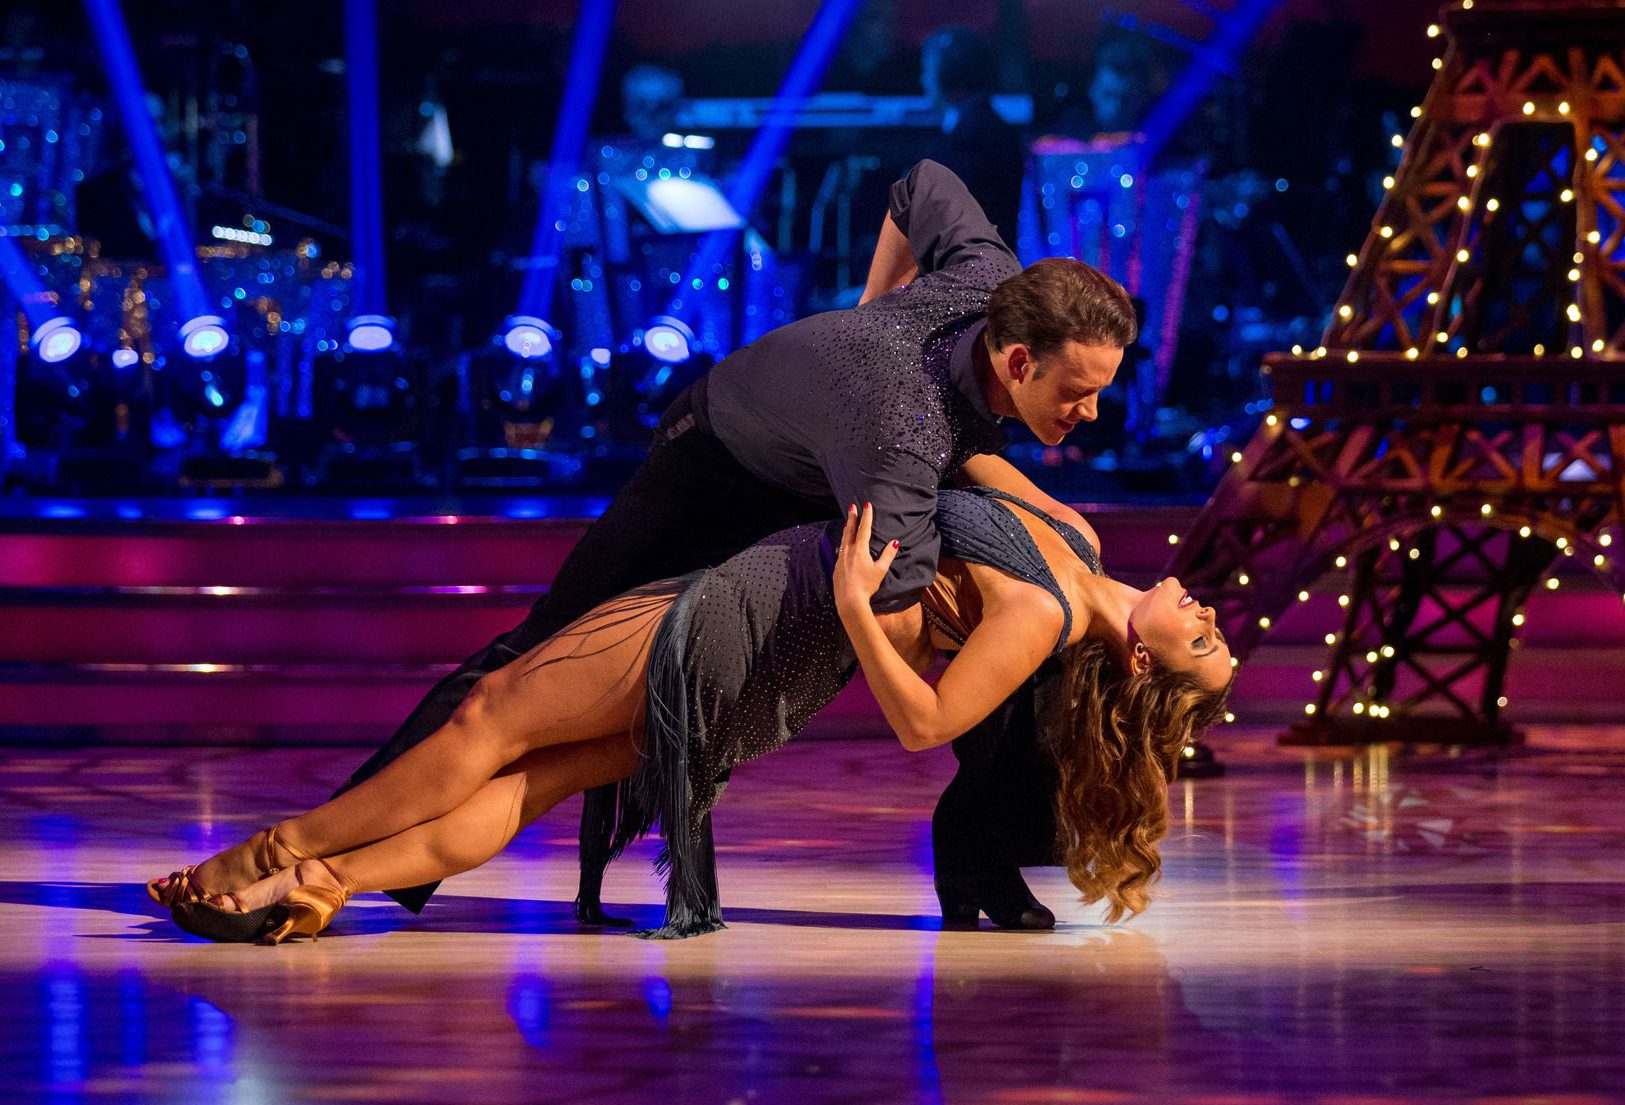 Louise Redknapp denies dancing with Kevin Clifton on Strictly wrecked her marriage